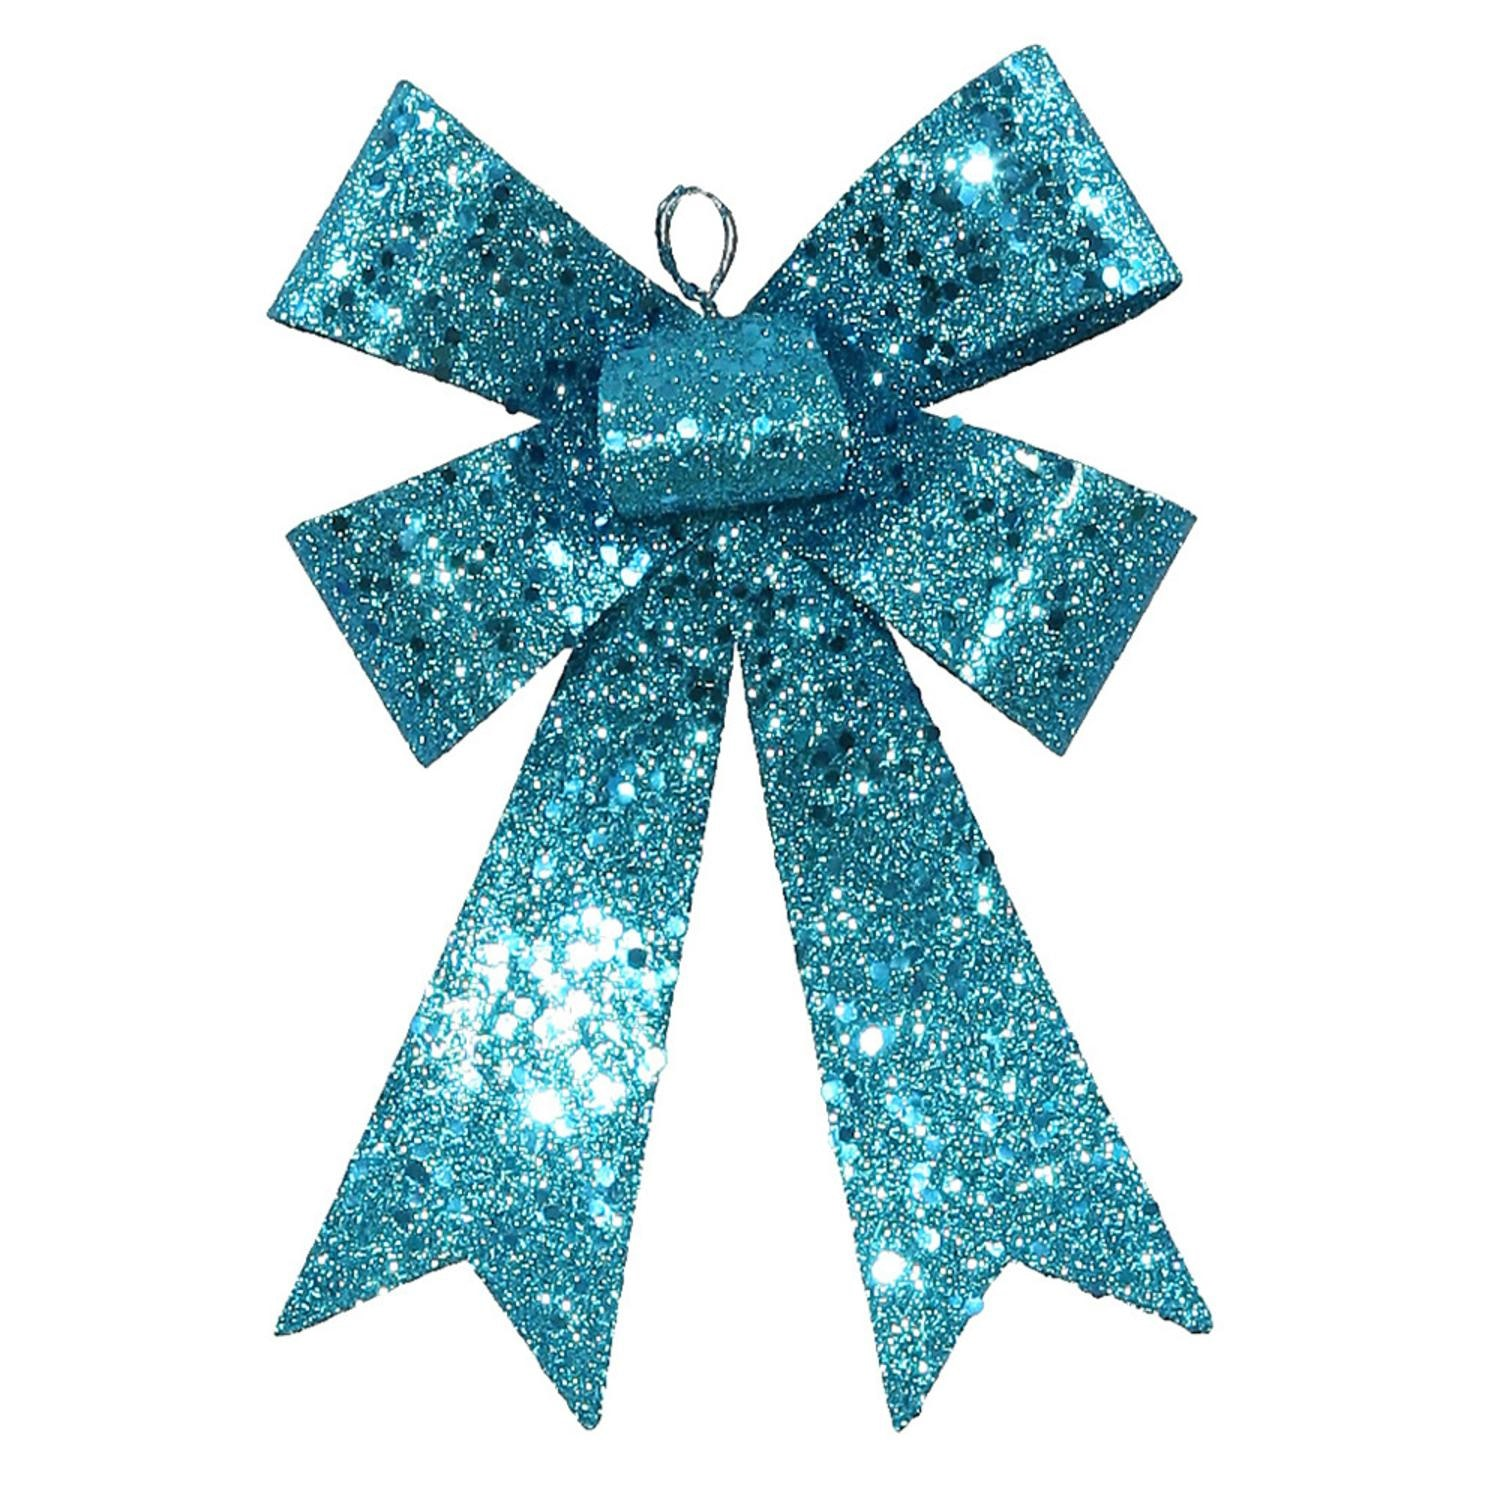 9 tiffany blue christmas decorations that are beyond stunning - Blue Christmas Ornaments